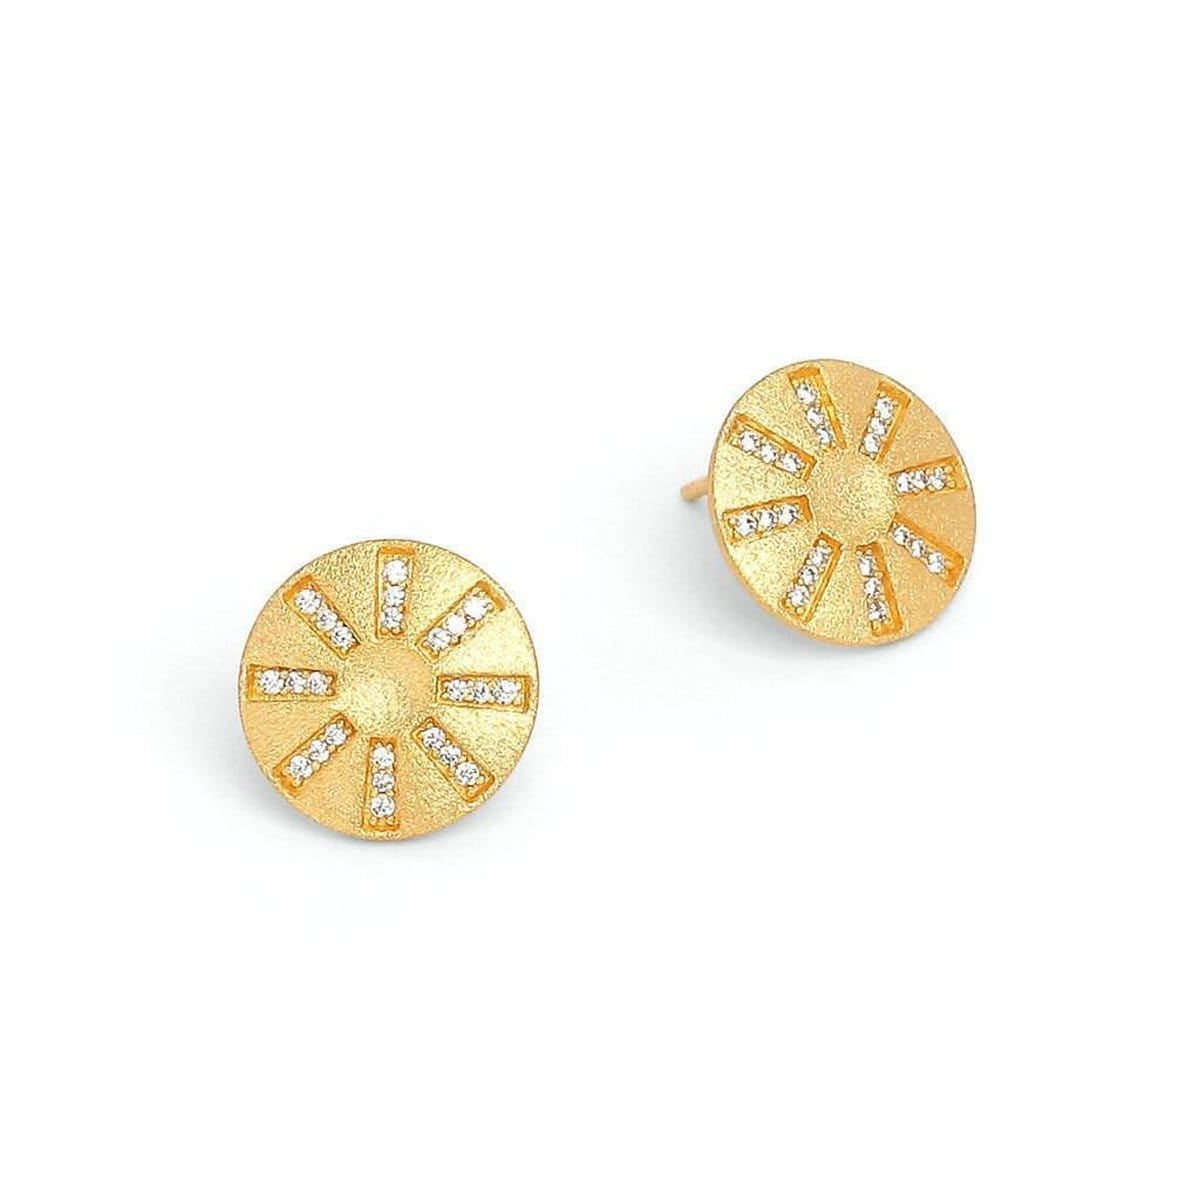 Sonne Earrings - 19174156